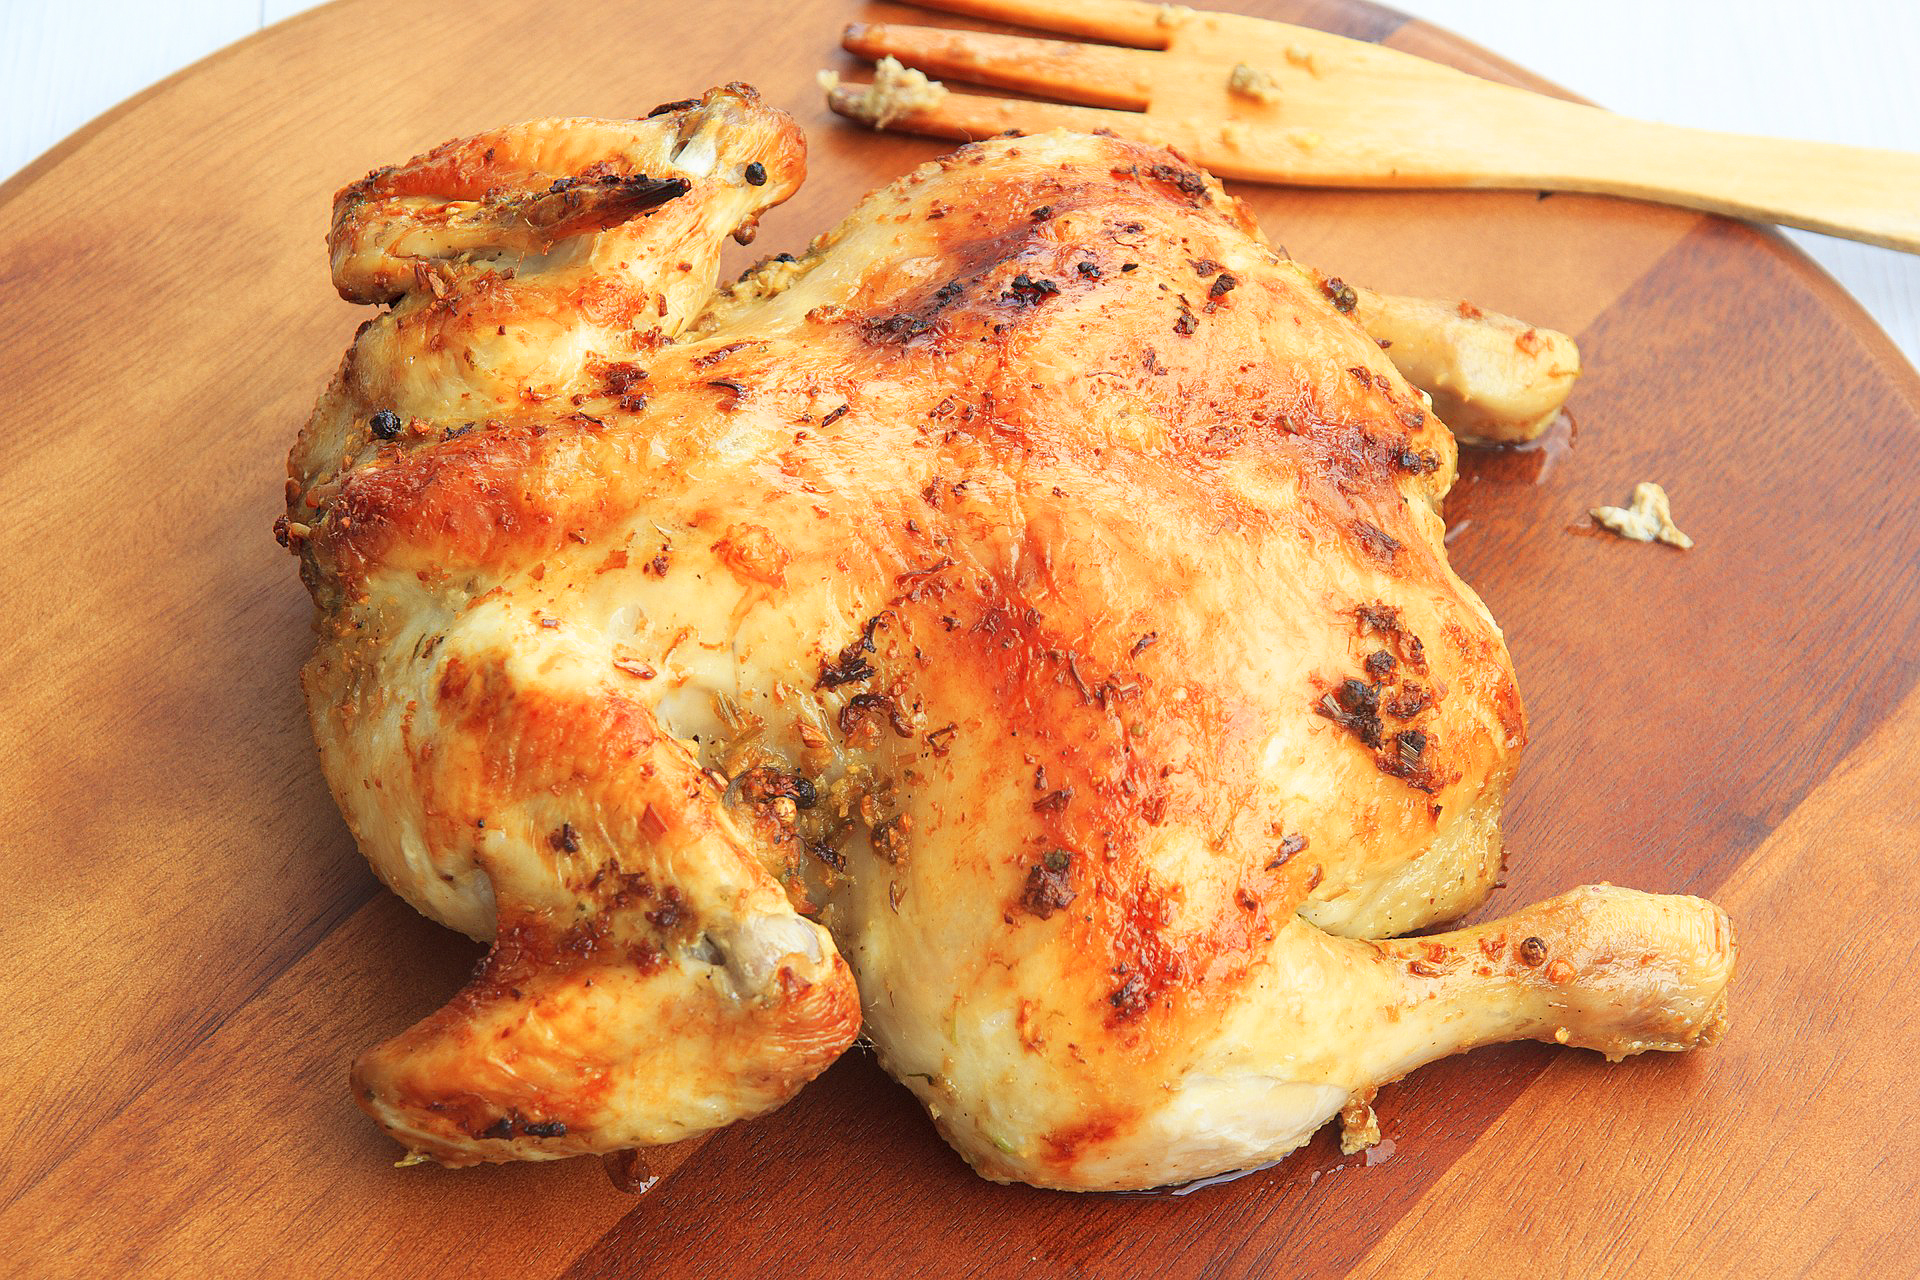 6 uses for a store-bought roasted chicken to make vacation cooking dead easy